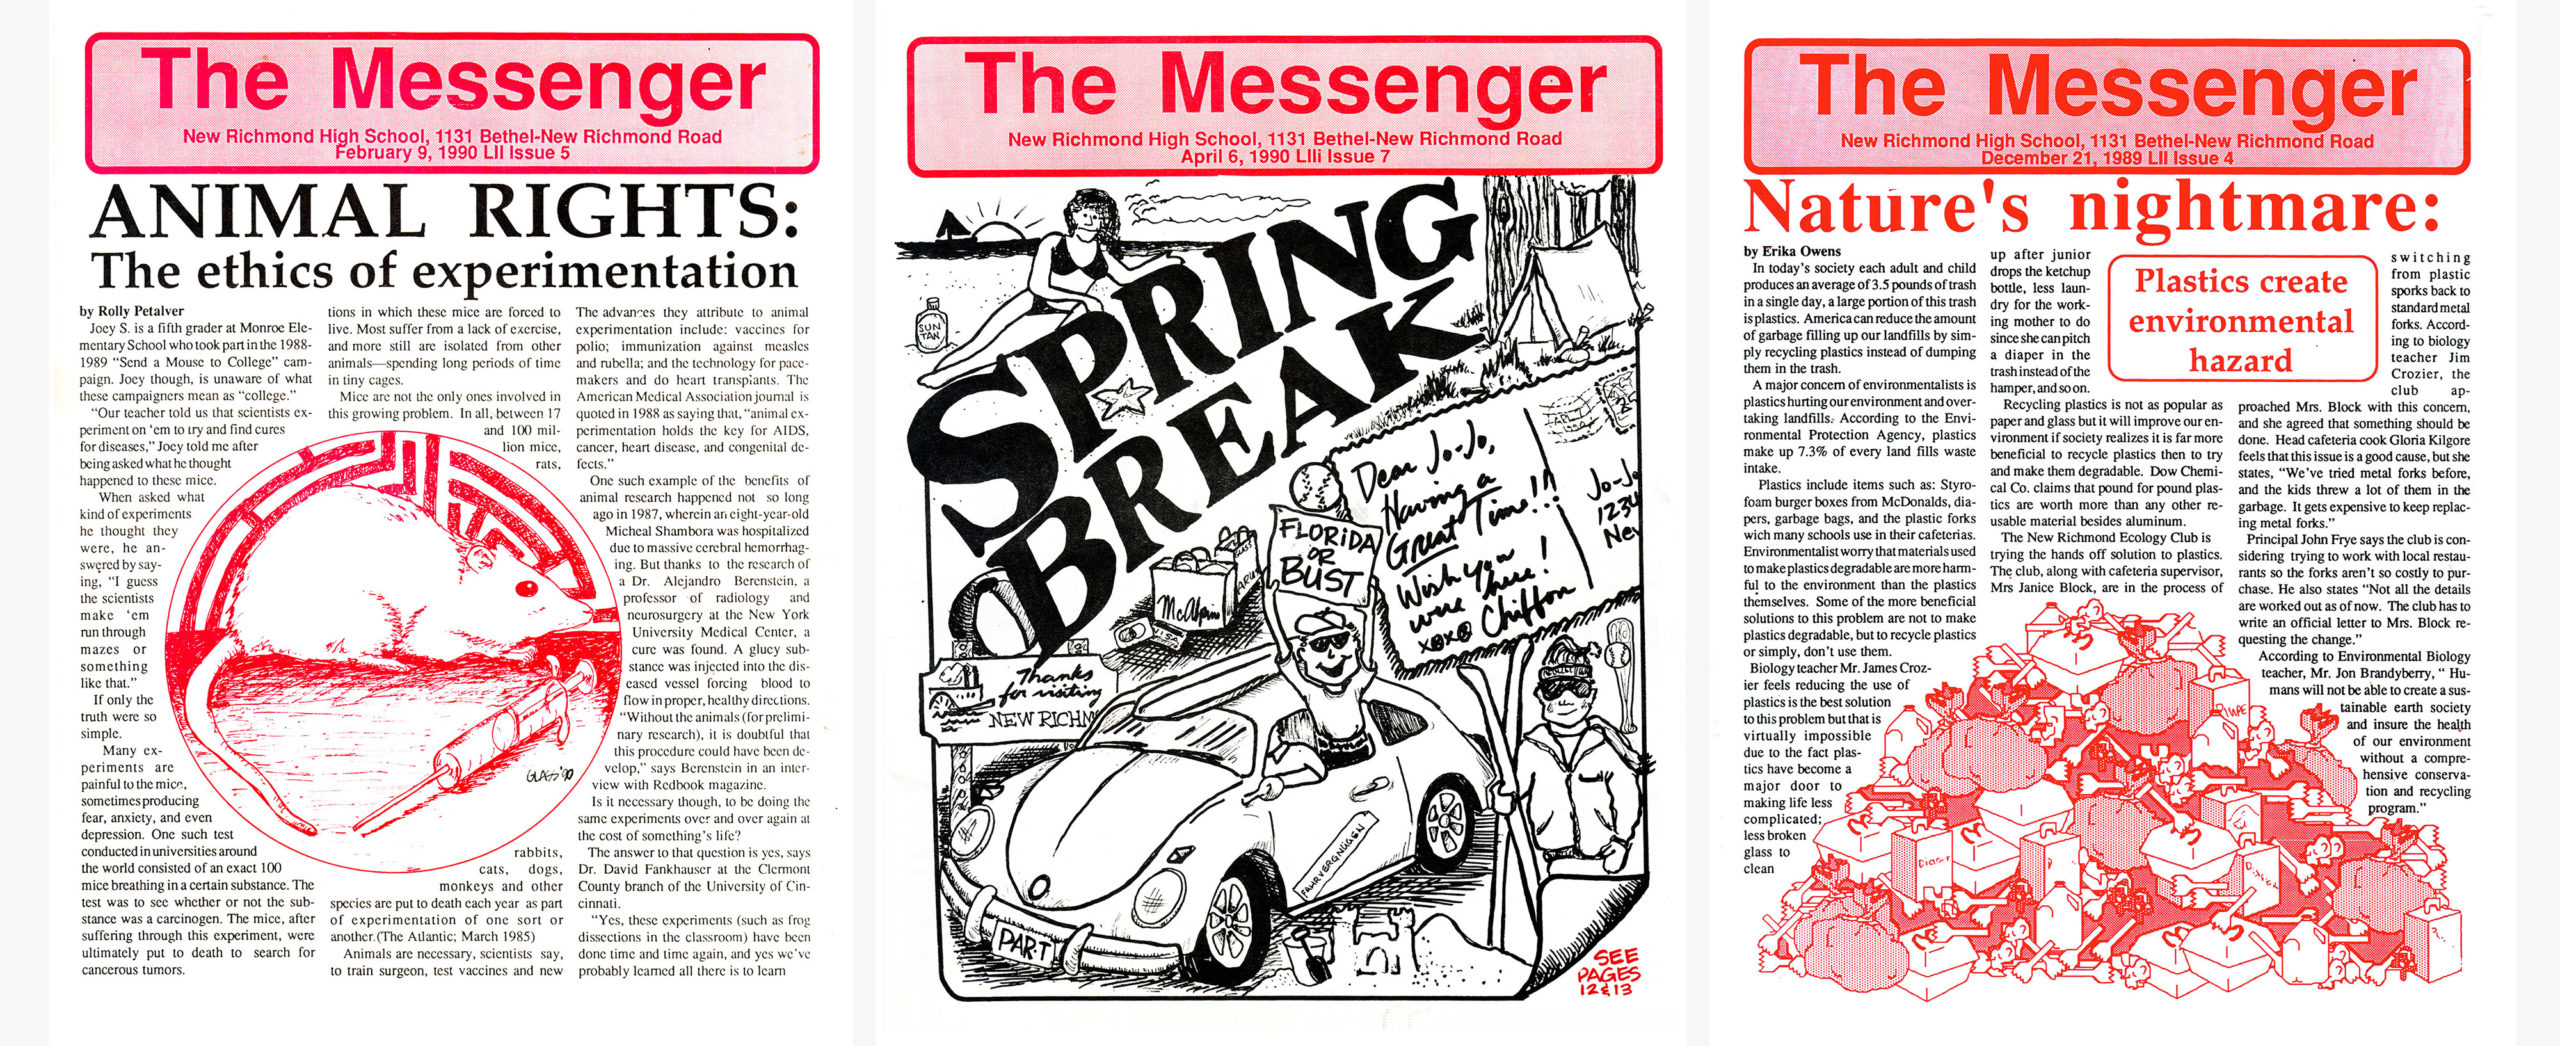 High School Newspaper covers from the 1990's